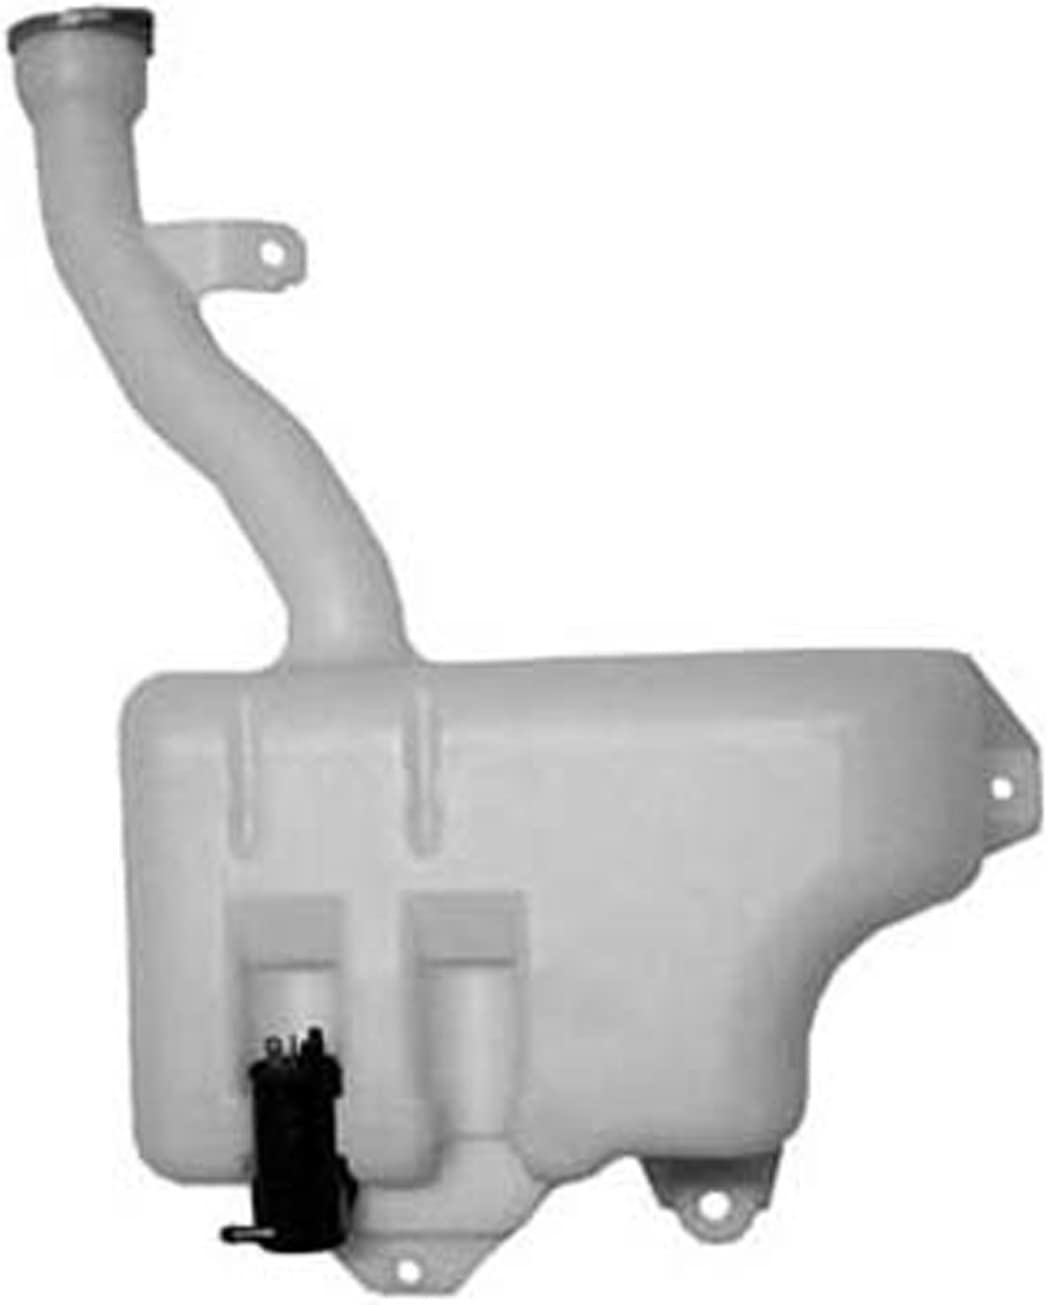 CPP Windshield Washer Tank Assembly for 94-97 Honda Accord HO1288106